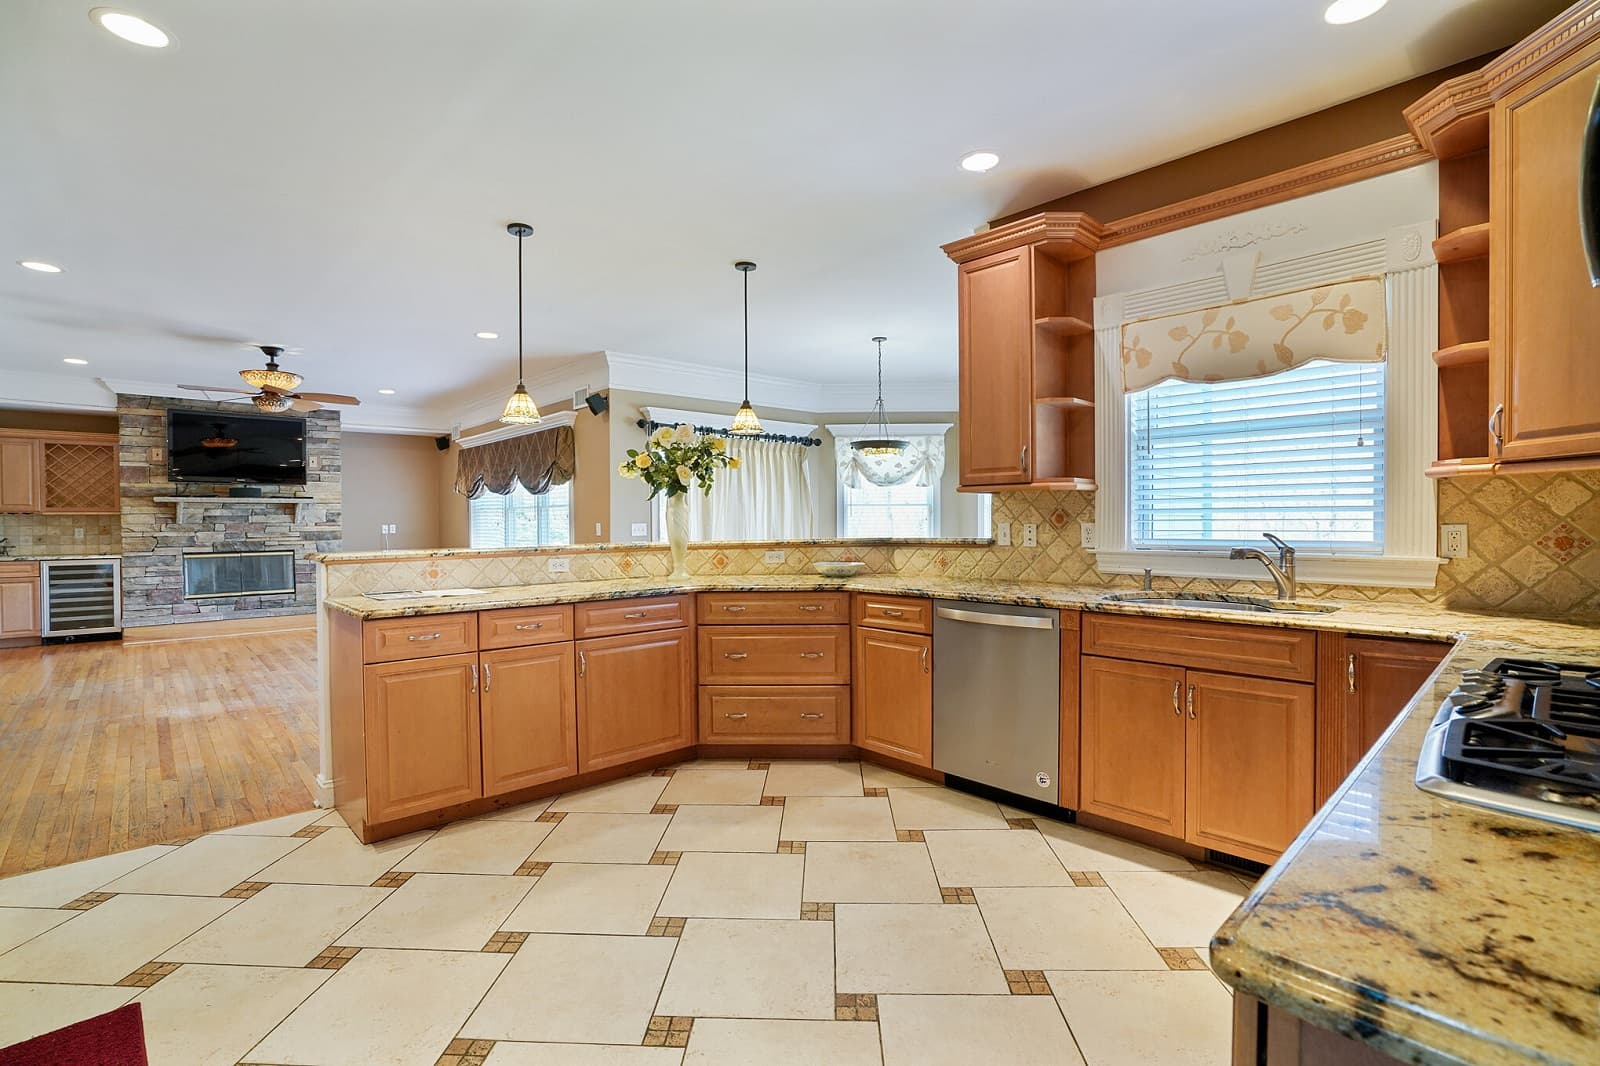 Real Estate Photography in Huntington - NY - USA - Kitchen View